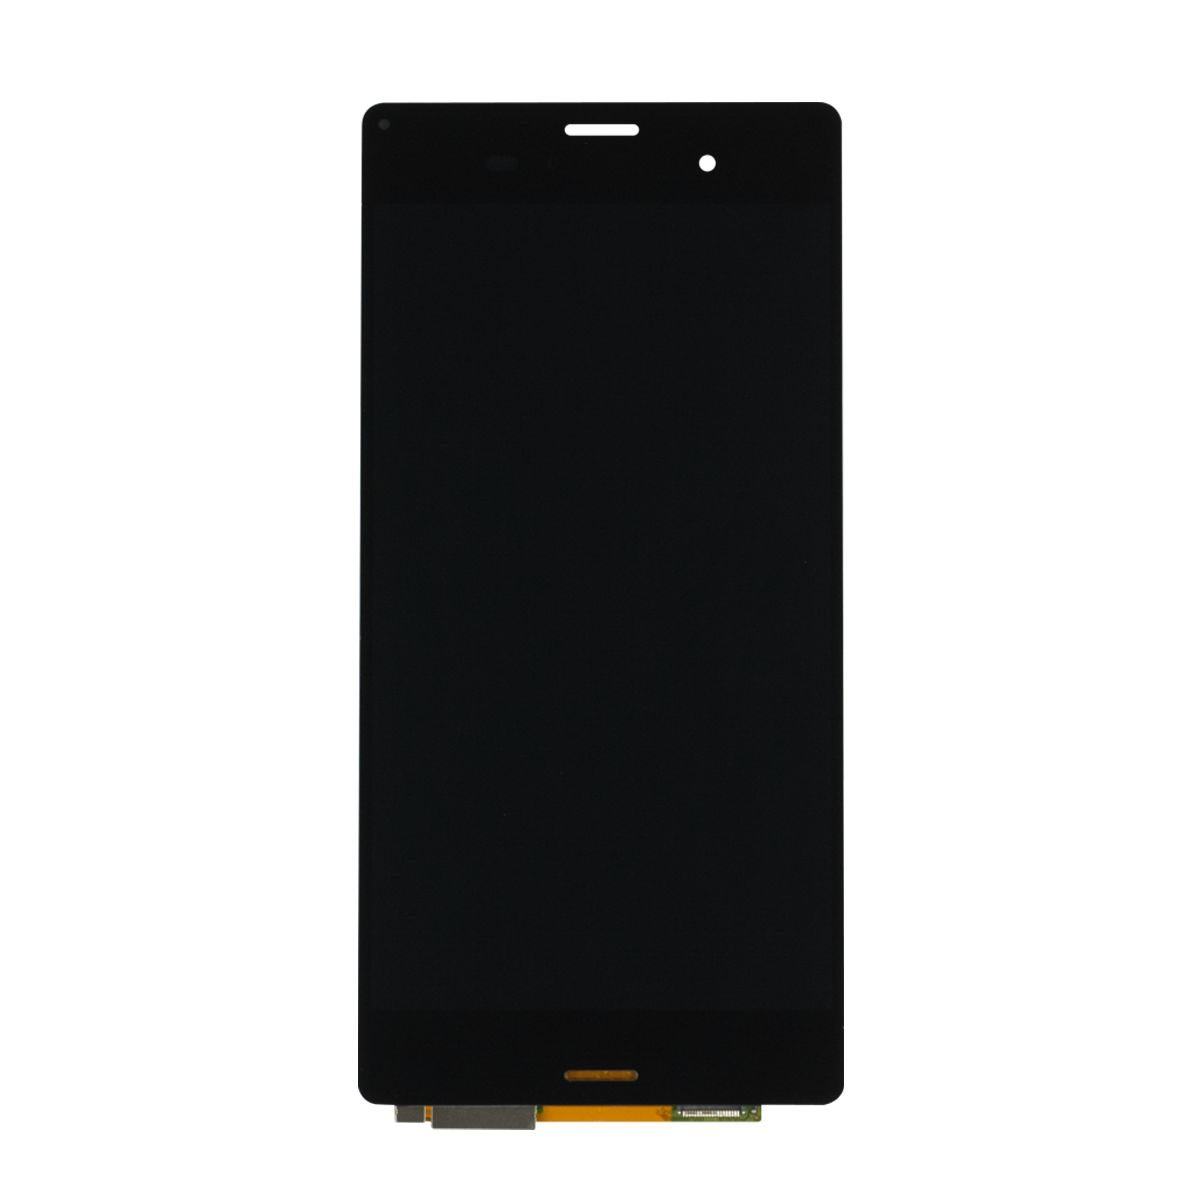 Sony Xperia Z3 Replacement LCD & Touch Screen